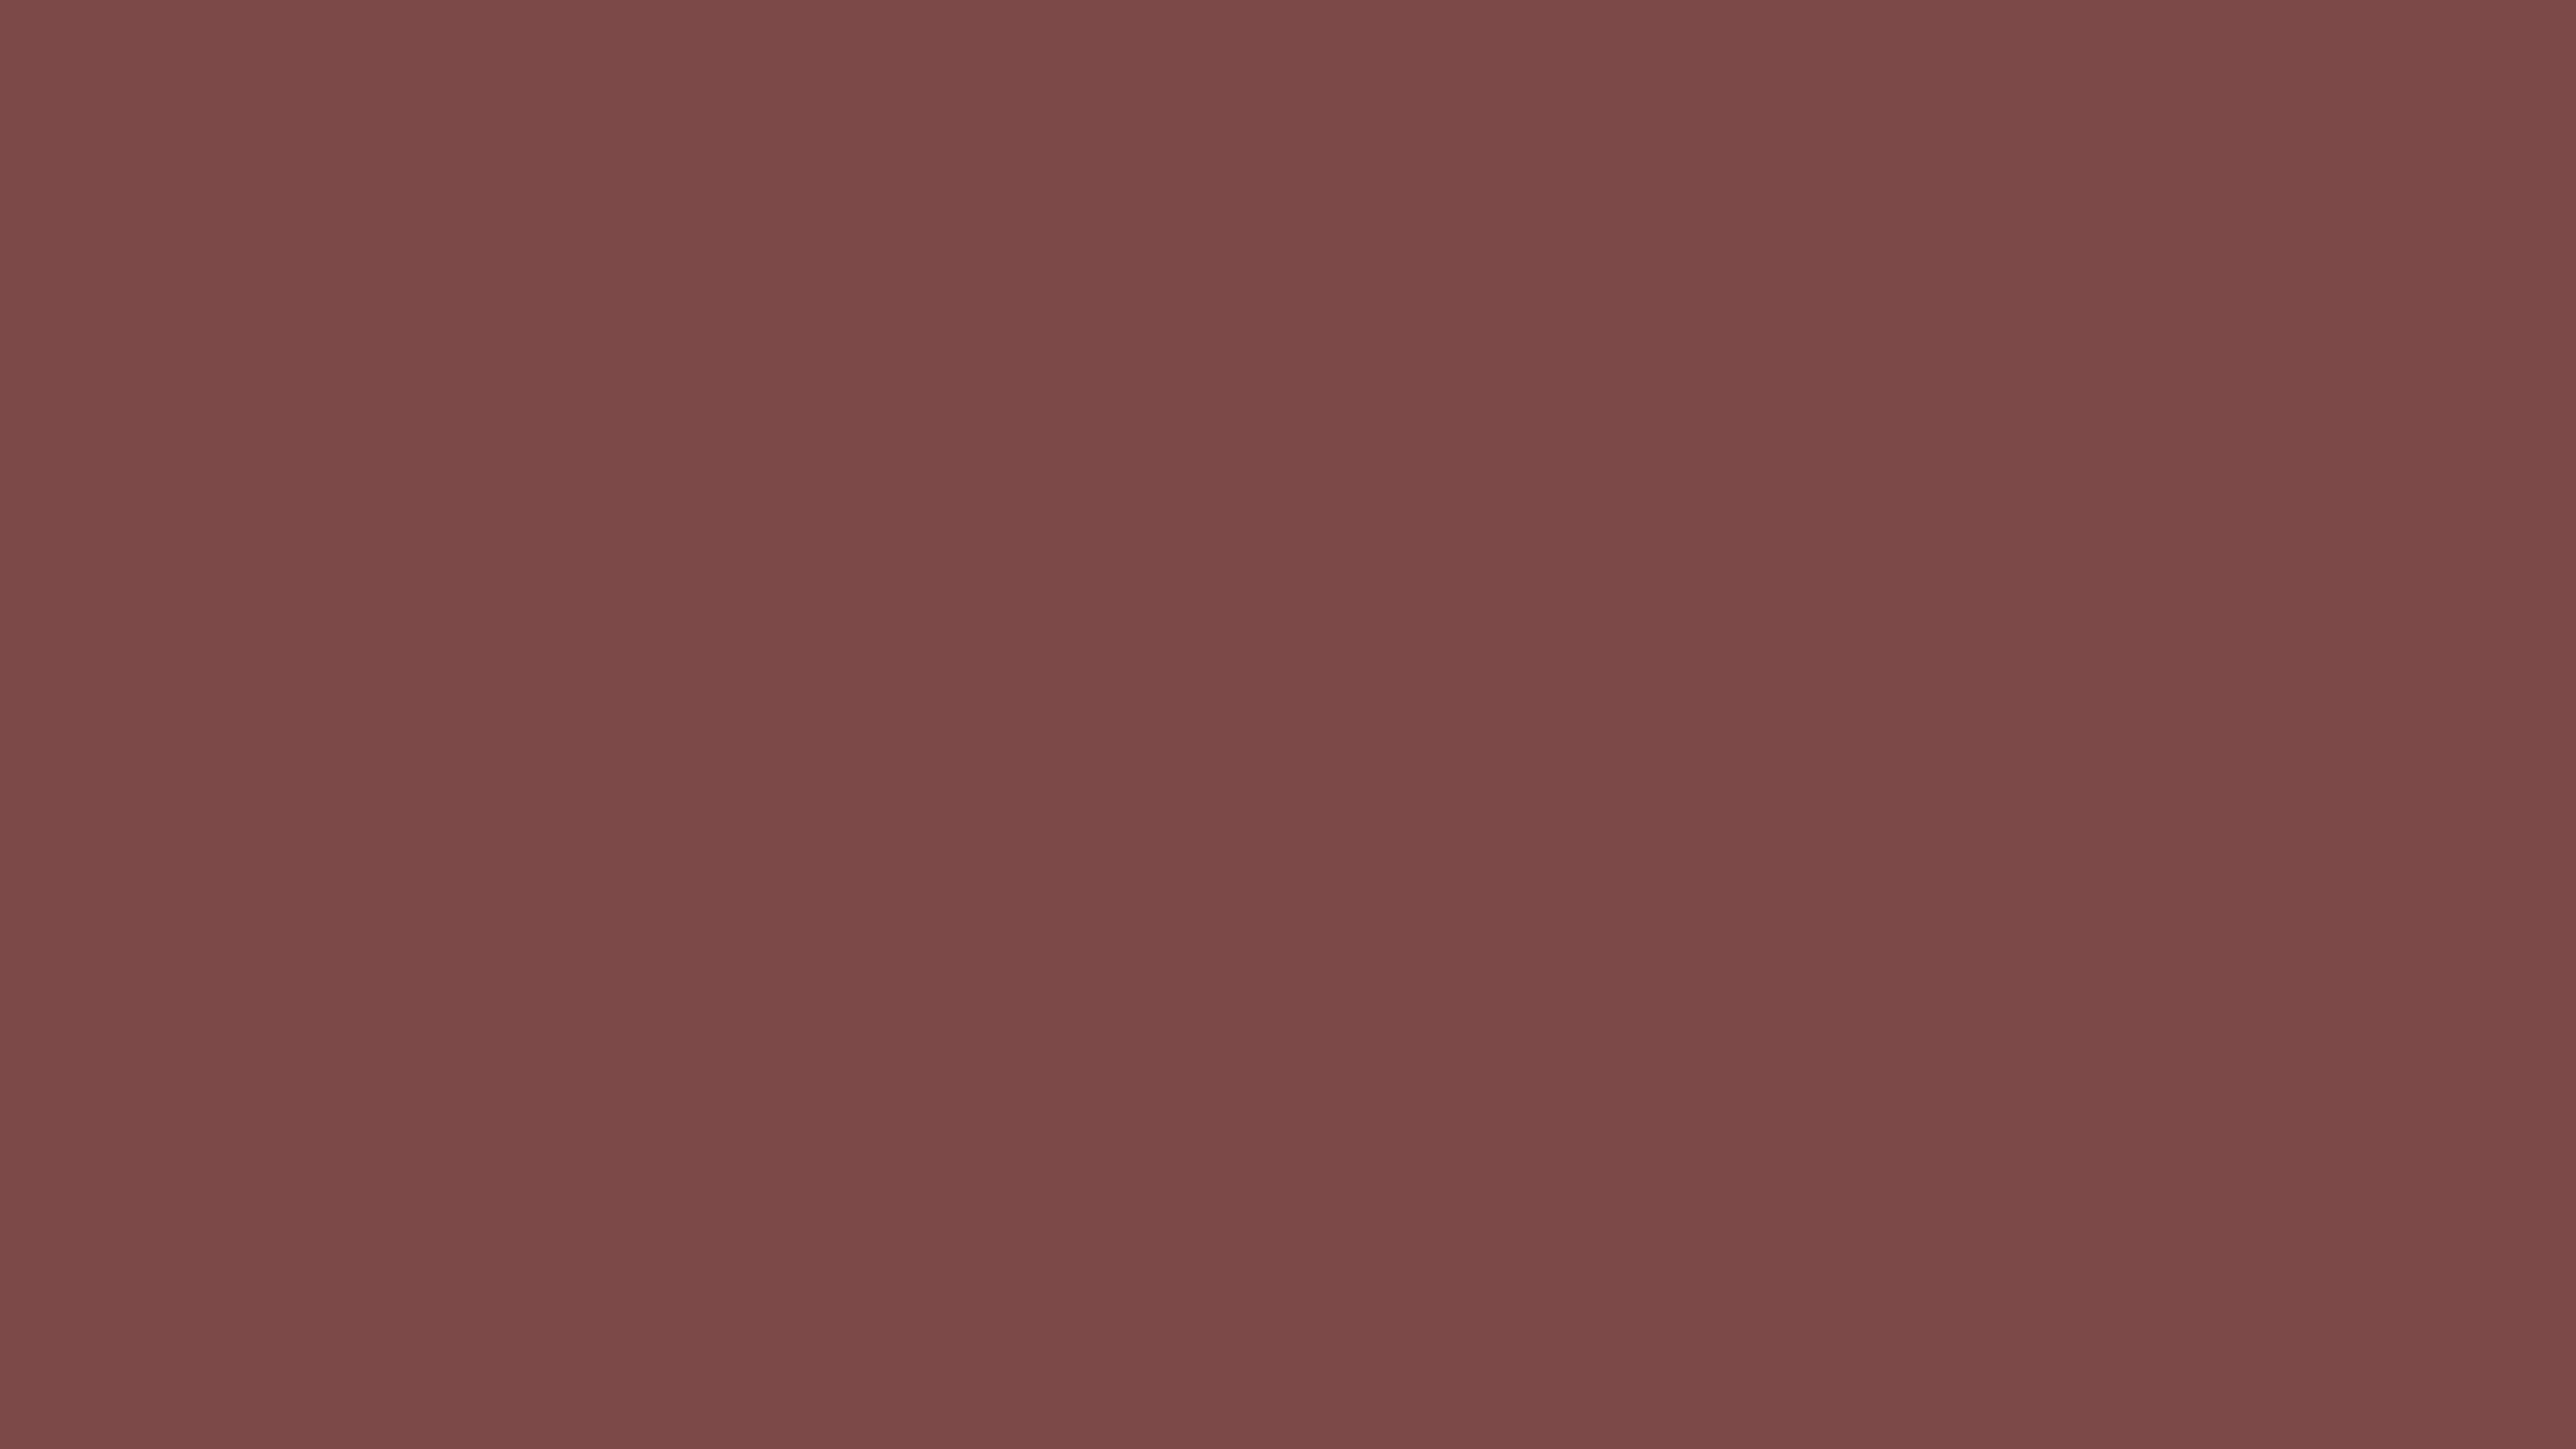 5120x2880 Tuscan Red Solid Color Background